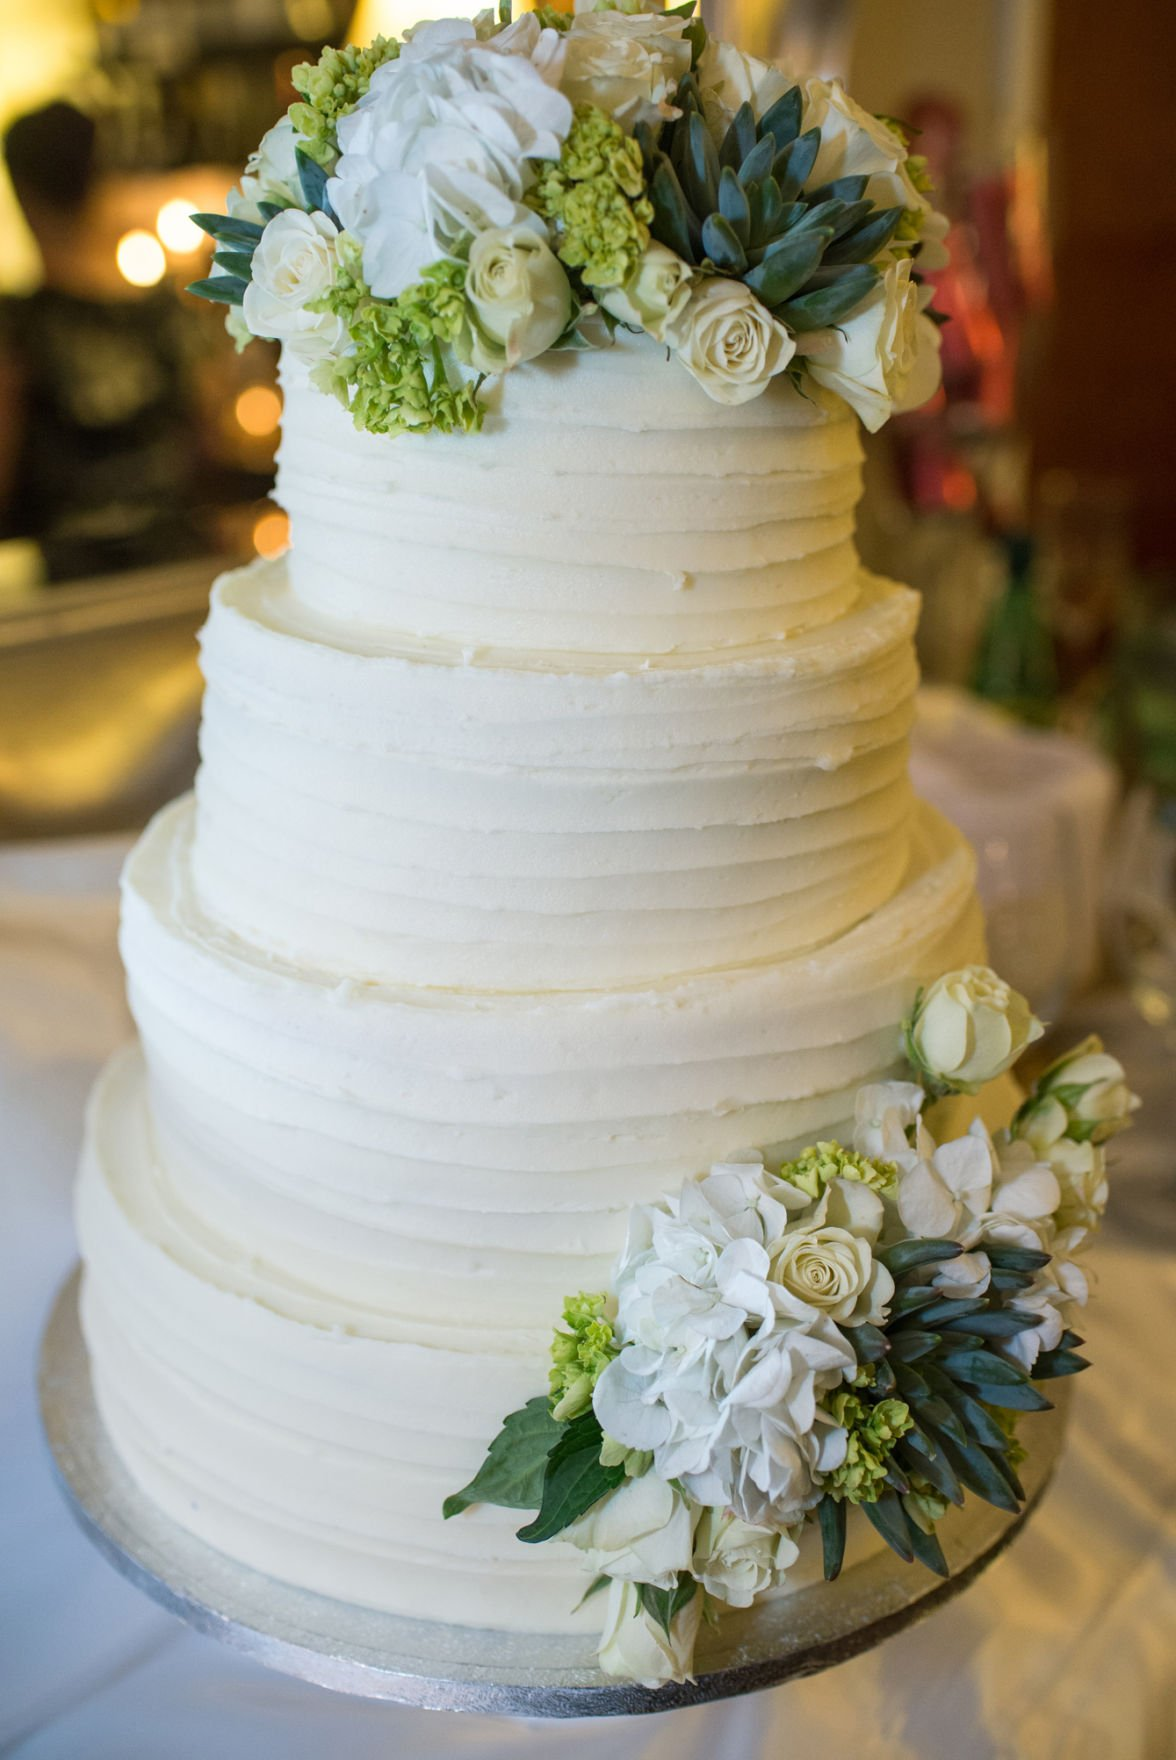 Cake-Cutting Etiquette & Guidelines | Hitched | mooresvilletribune.com